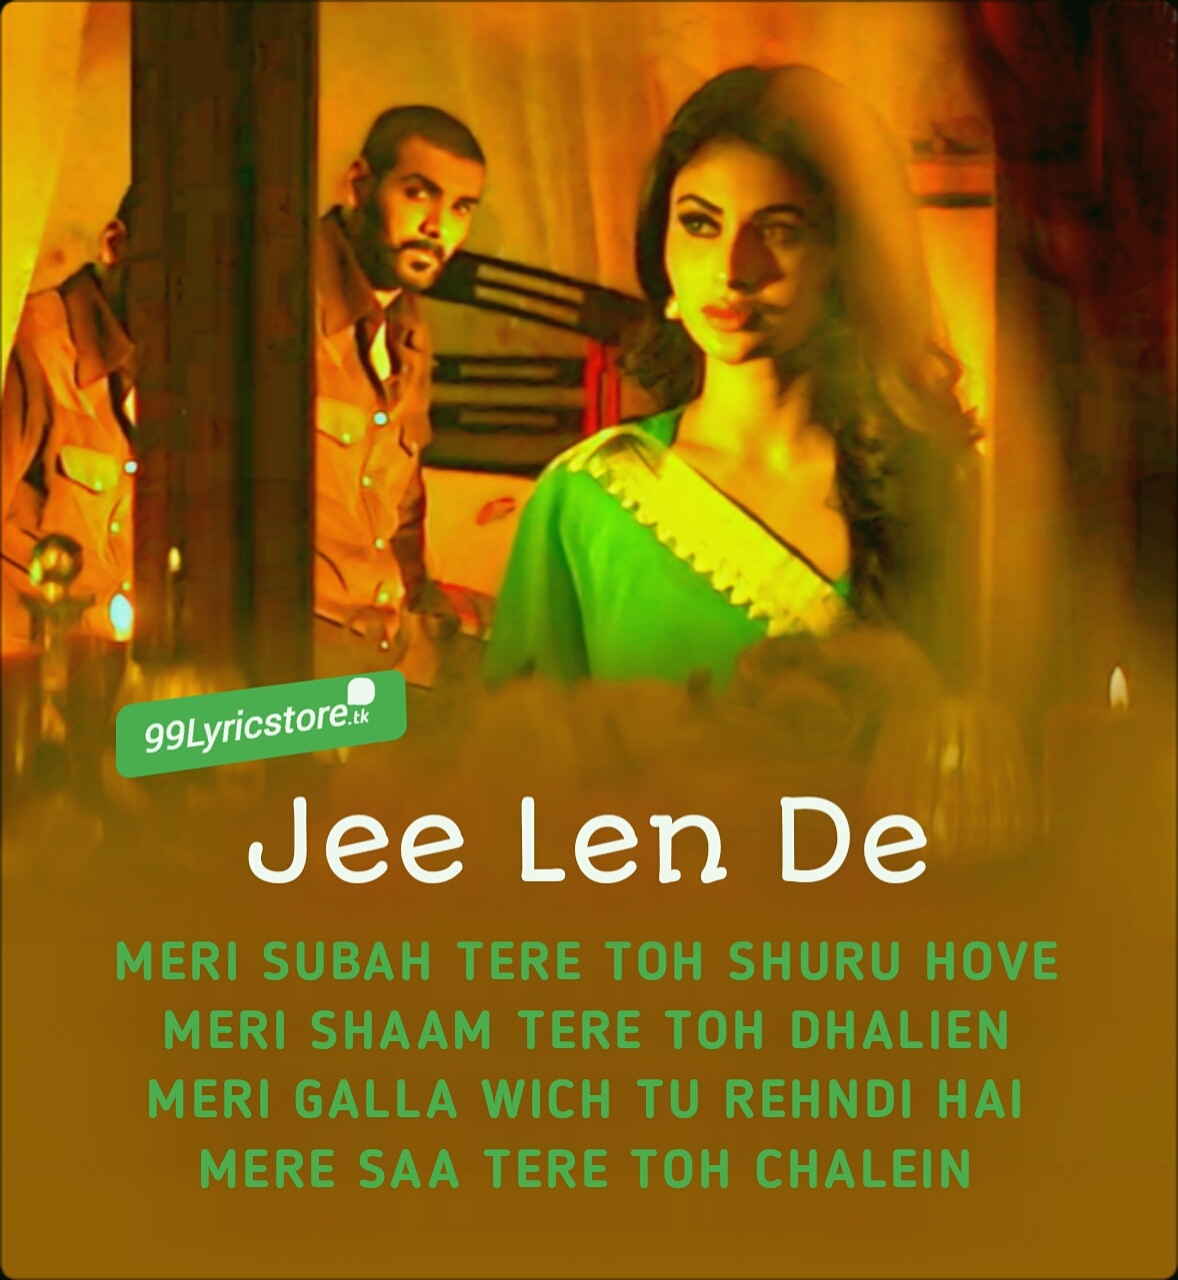 RAW Jee Len De Lyrics Mohit Chauhan John Abraham and Mouni Roy